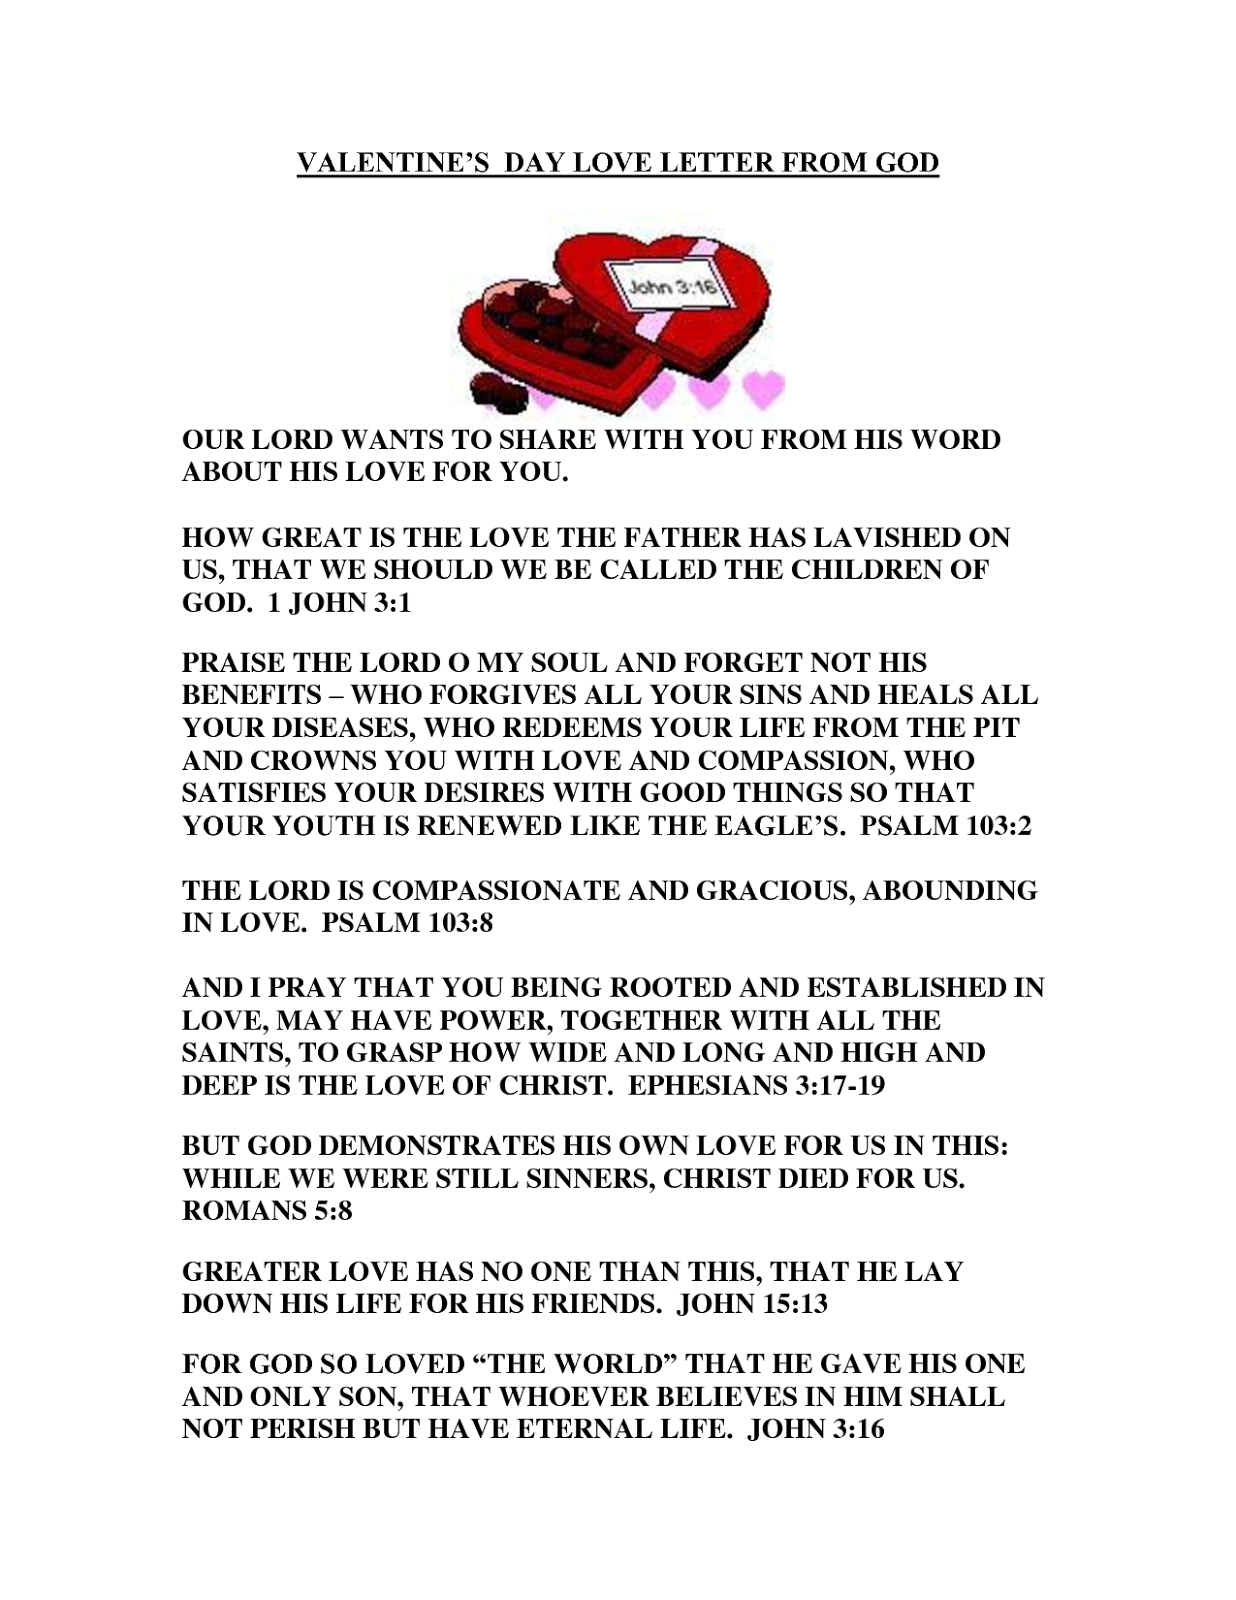 Valentines Day Love Letters. Writing effective and heart touching Valentine's Day Love Letters is quite an art in itself. To perfect this art one needs a will to express and lots of love for the recipient of the letter.